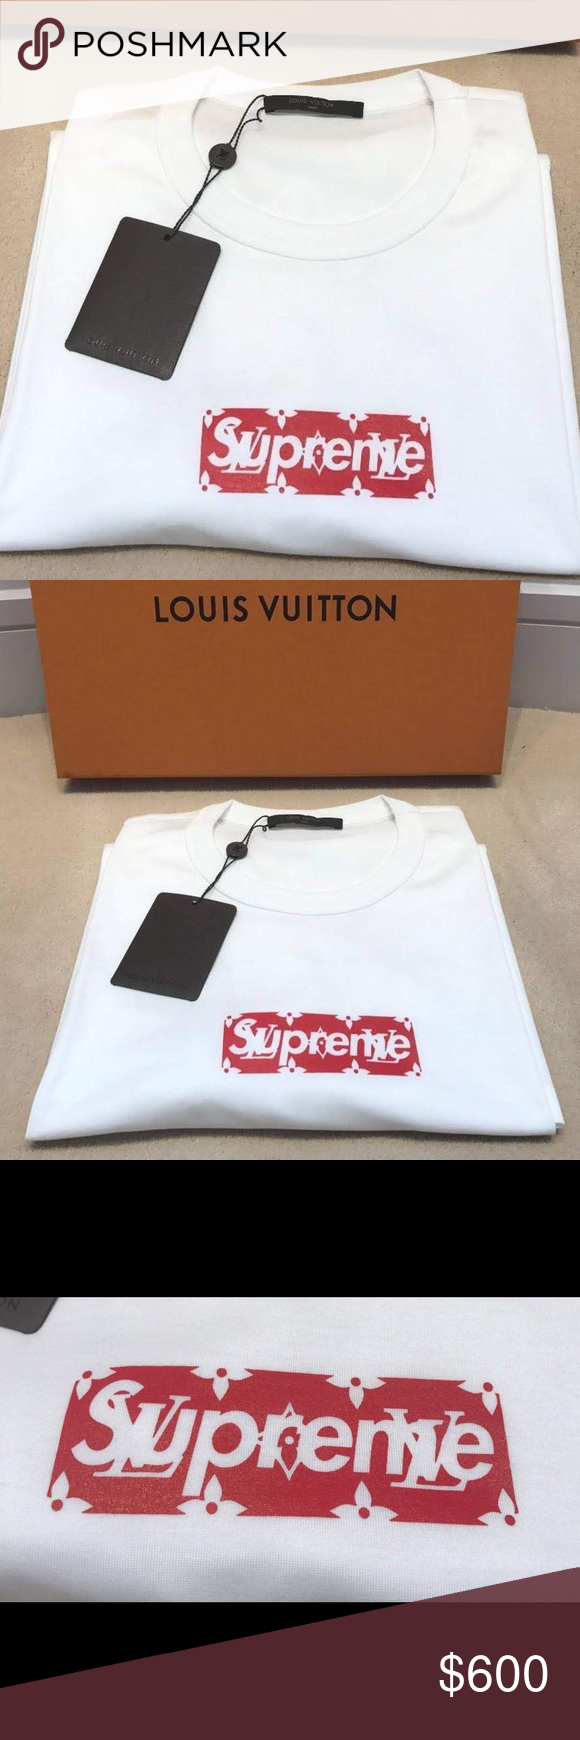 1dcf30ca7918 Supreme x Louis Vuitton Box Logo Tee Brand New in Box! Comes with tags  Comes with reciepts 100% Authentic   Legit Offers are dAccepted Trades are  Accepted ...